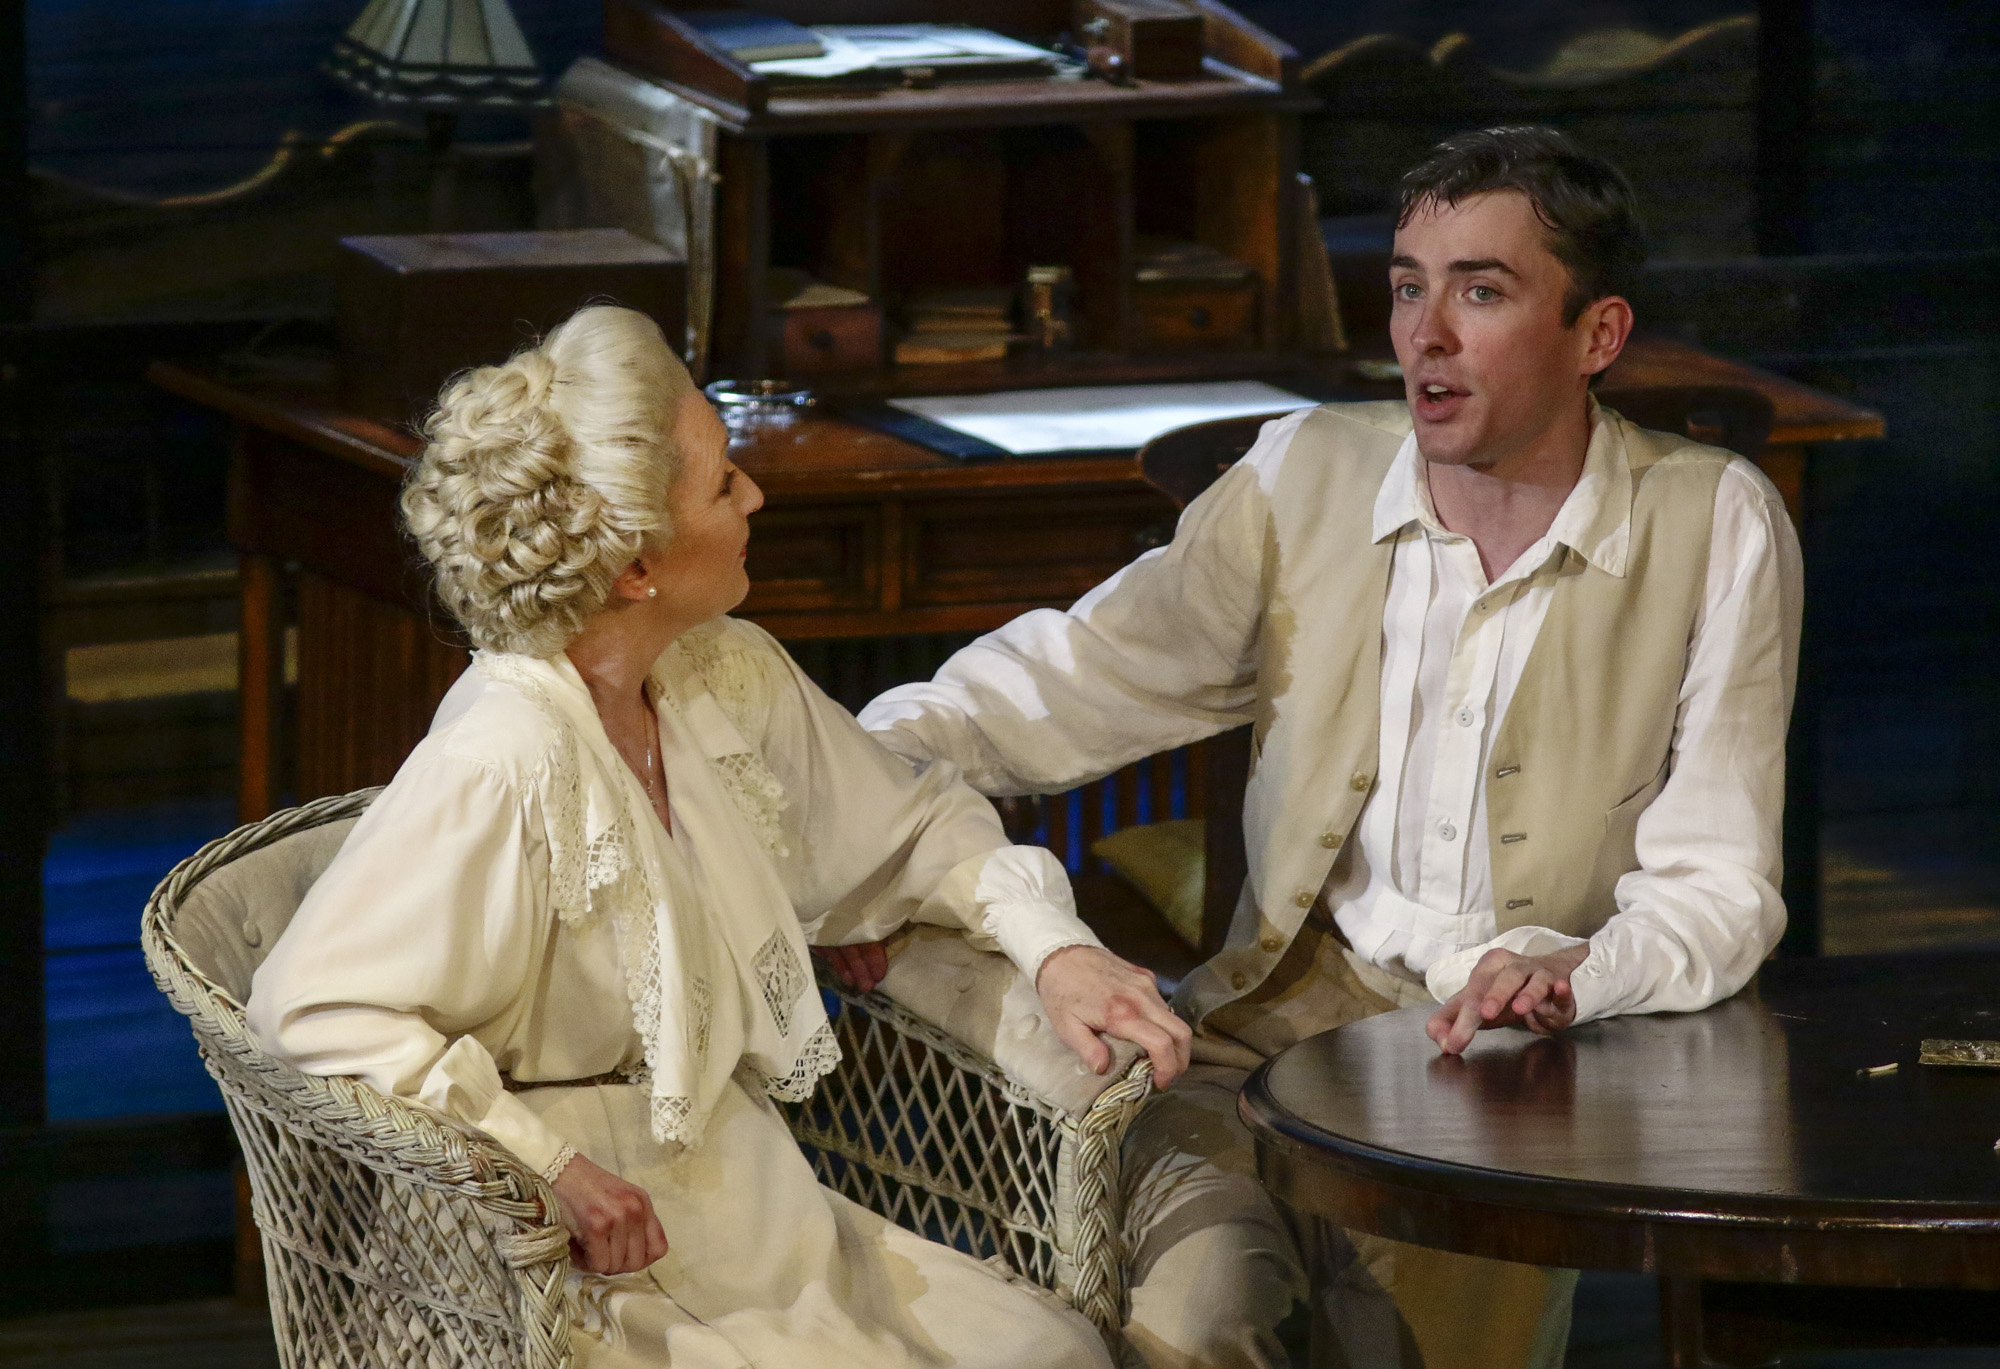 Lesley Manville (Mary Tyrone), Matthew Beard (Edmund Tyrone). PHOTO CREDIT: Lawrence K. Ho